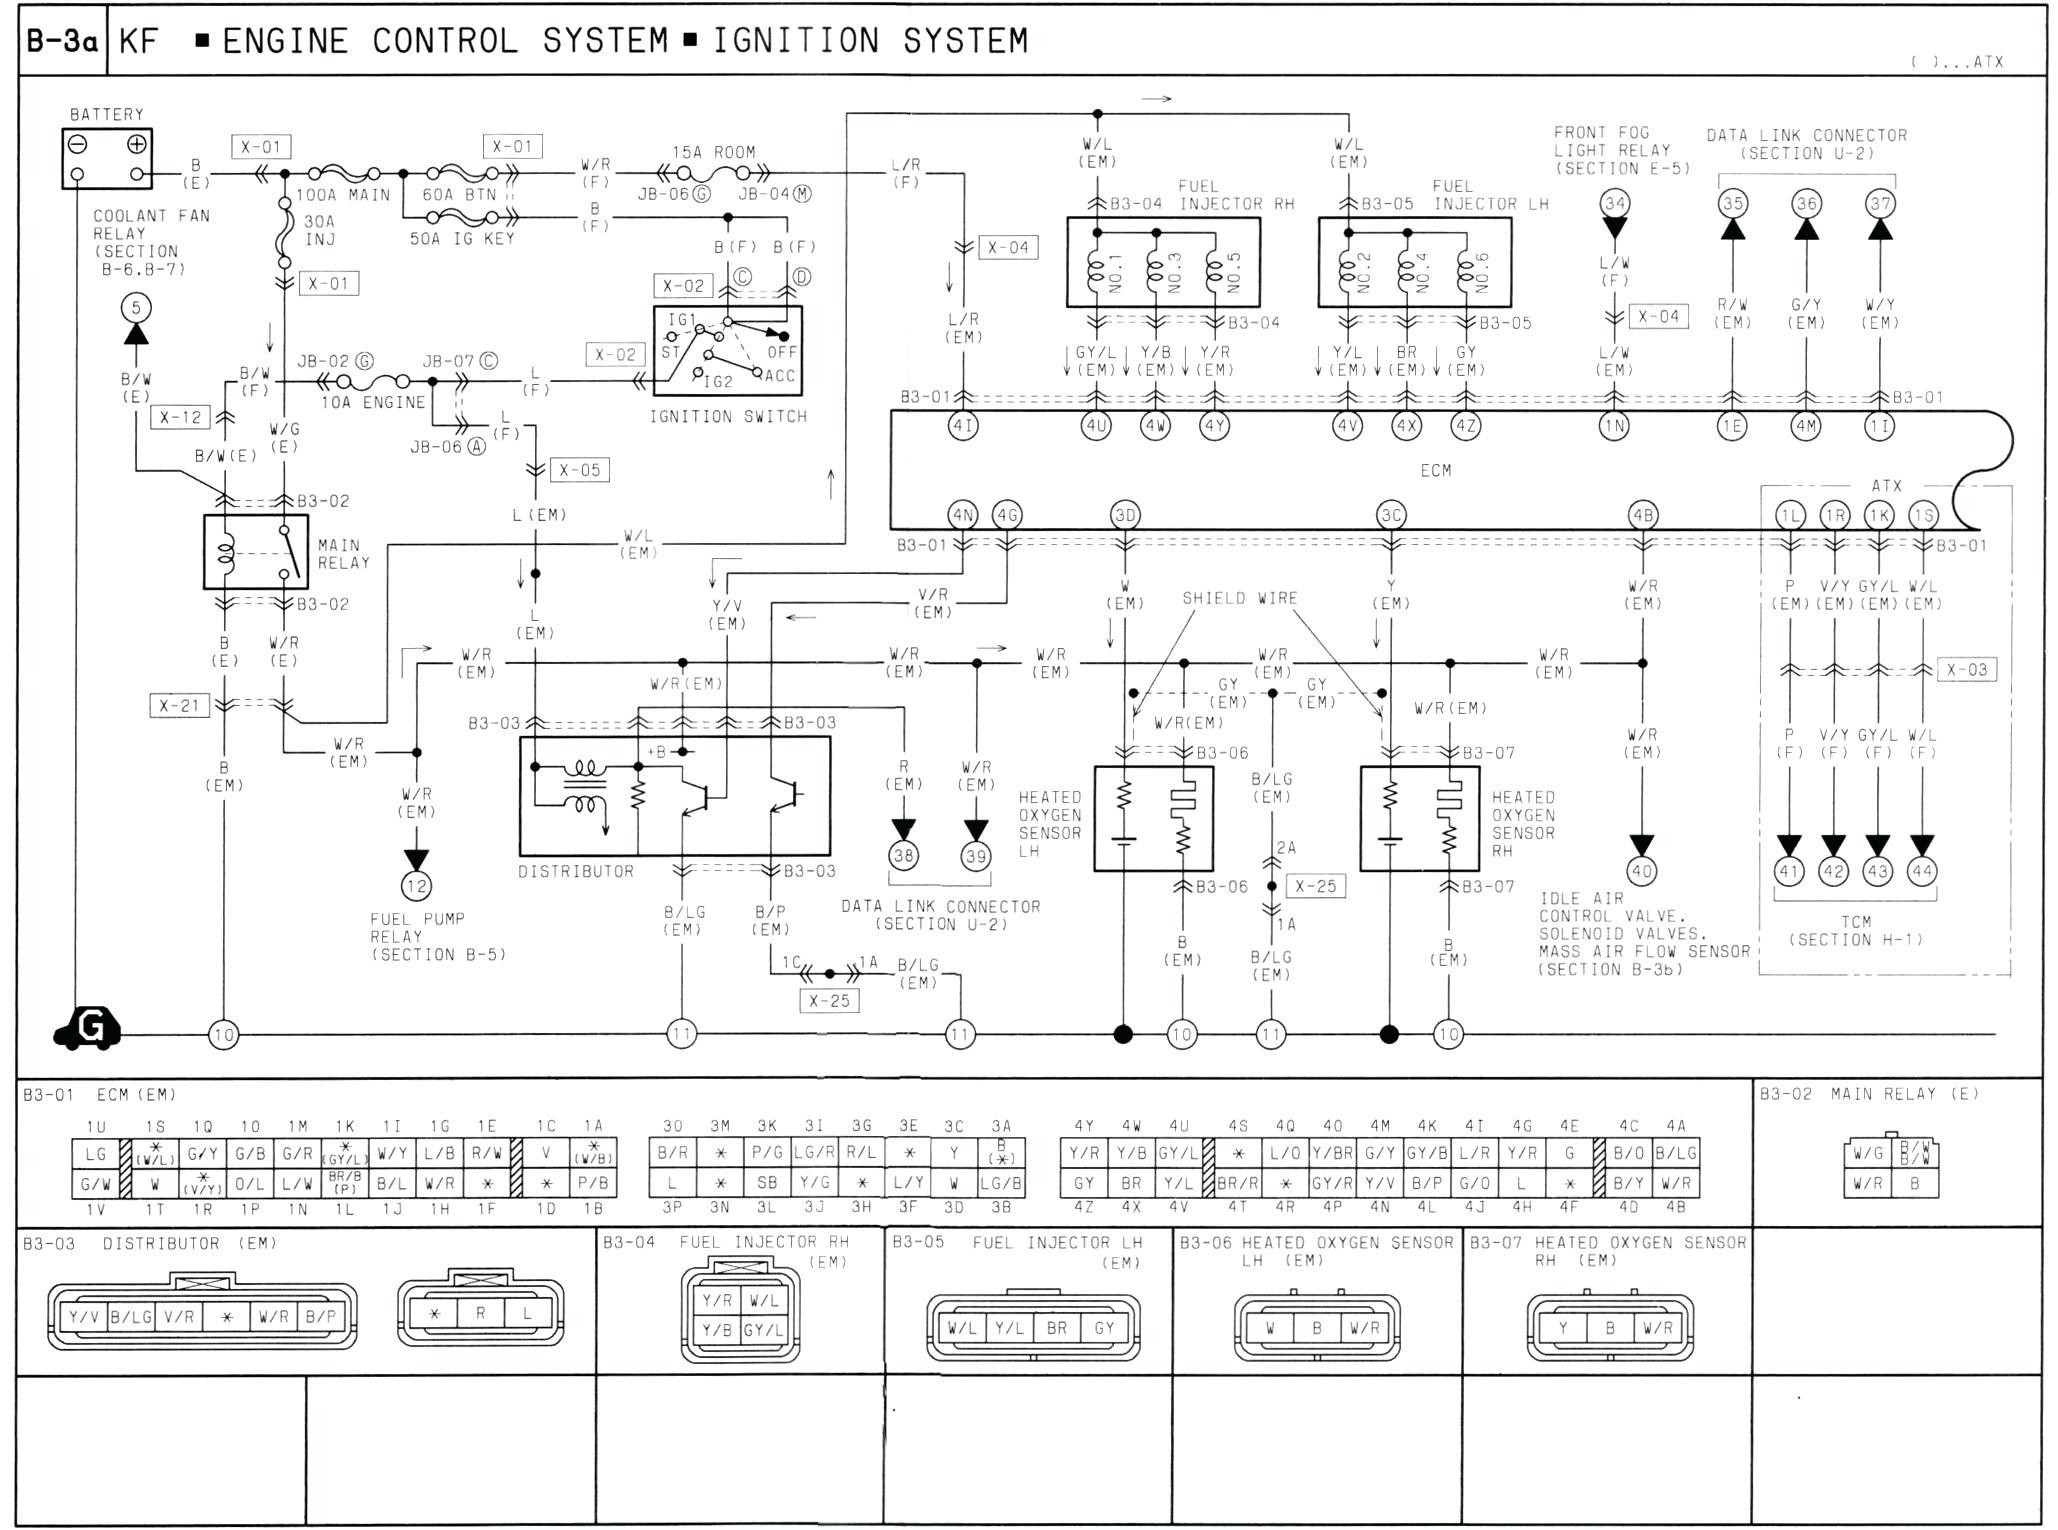 mazda wiring diagram color codes network and critical path diagrams house symbols